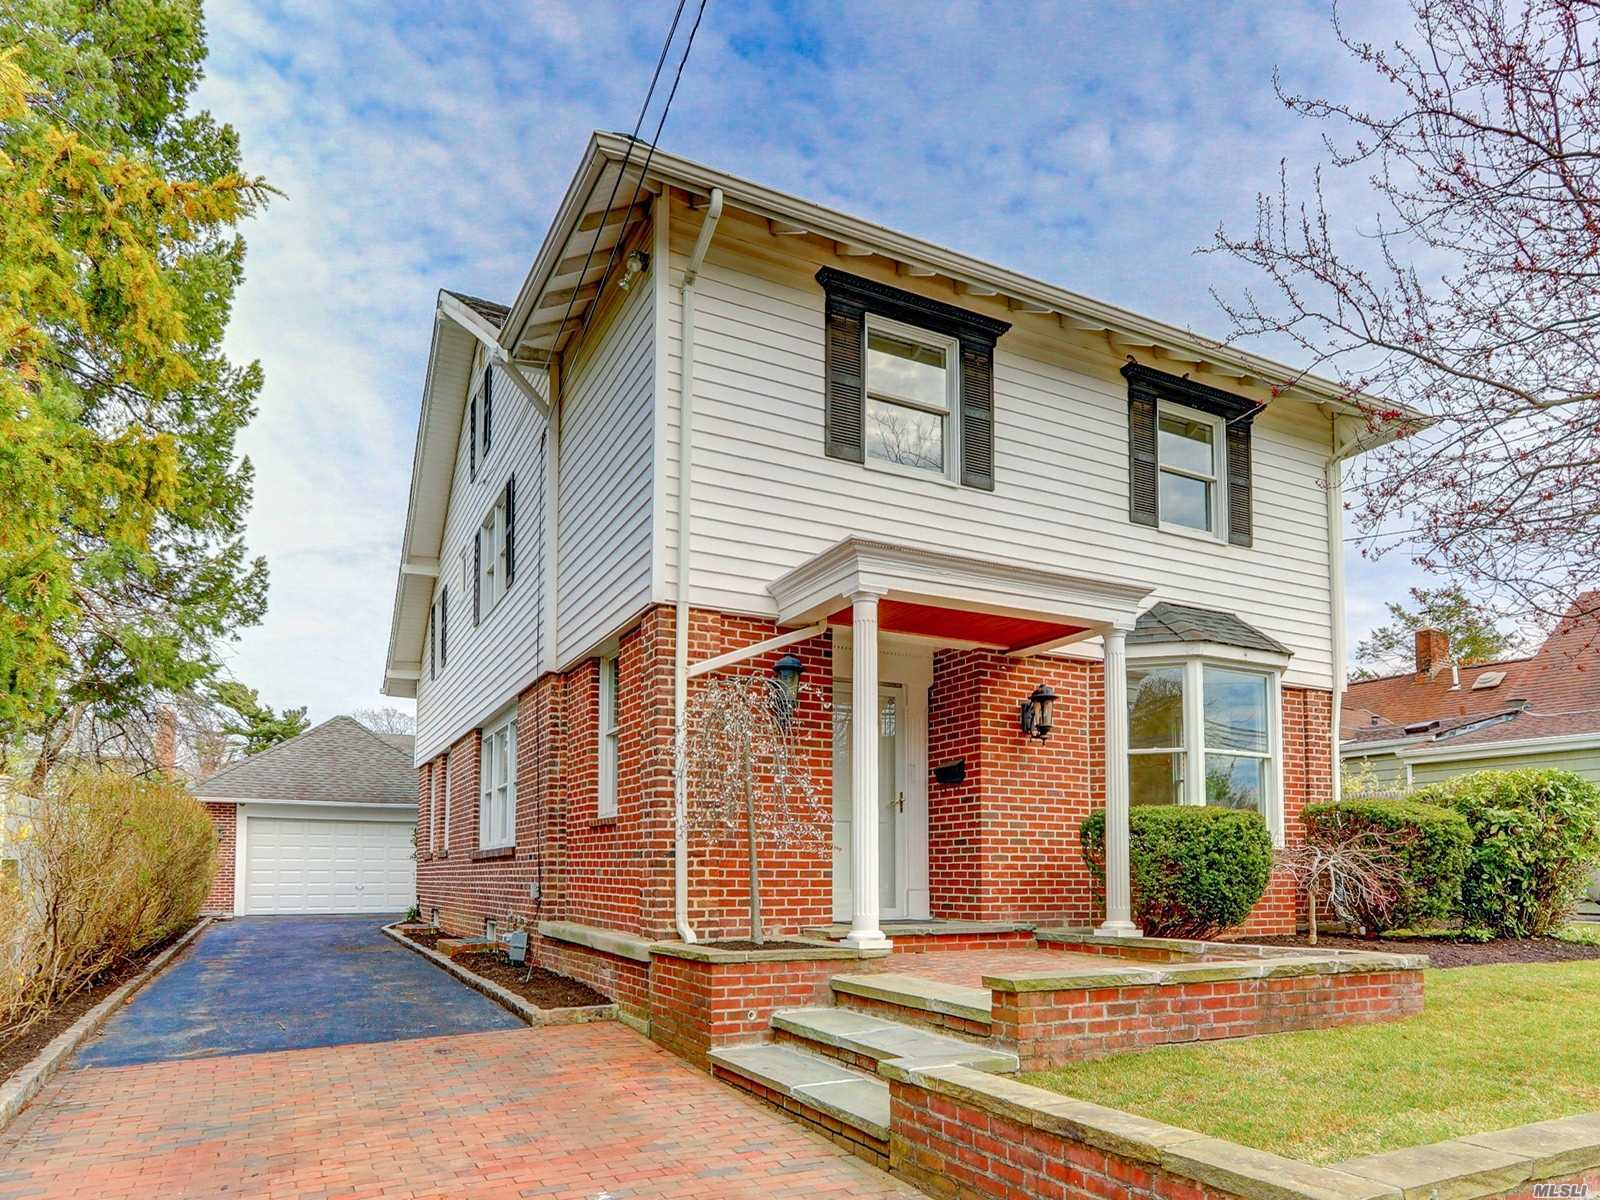 This renovated Colonial Style Home Features 5 Bedrooms, 3 New Baths, Formal Dining Room, updated Eat In Kitchen w/ granite counter and stainless steel appliances, fresh paint, new carpet, refurbished wood flooring, 2 car garage etc. Move right in. Don't miss this opportunity! Centrally Located To All.